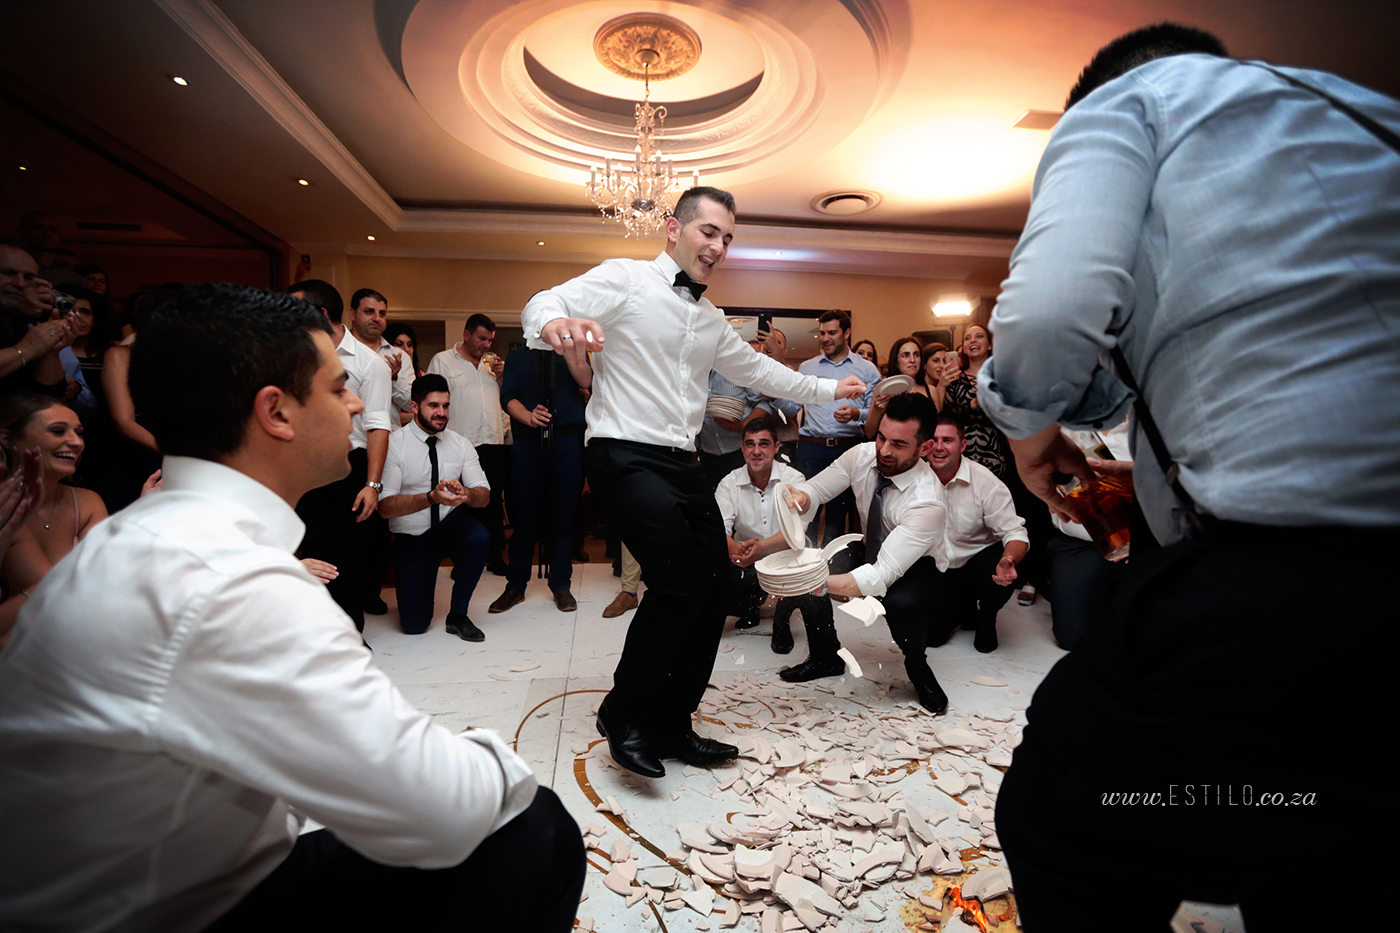 summer_place_wedding_photography_best_wedding_photographers_south_africa_traditional_greek_weddings0 3.jpg